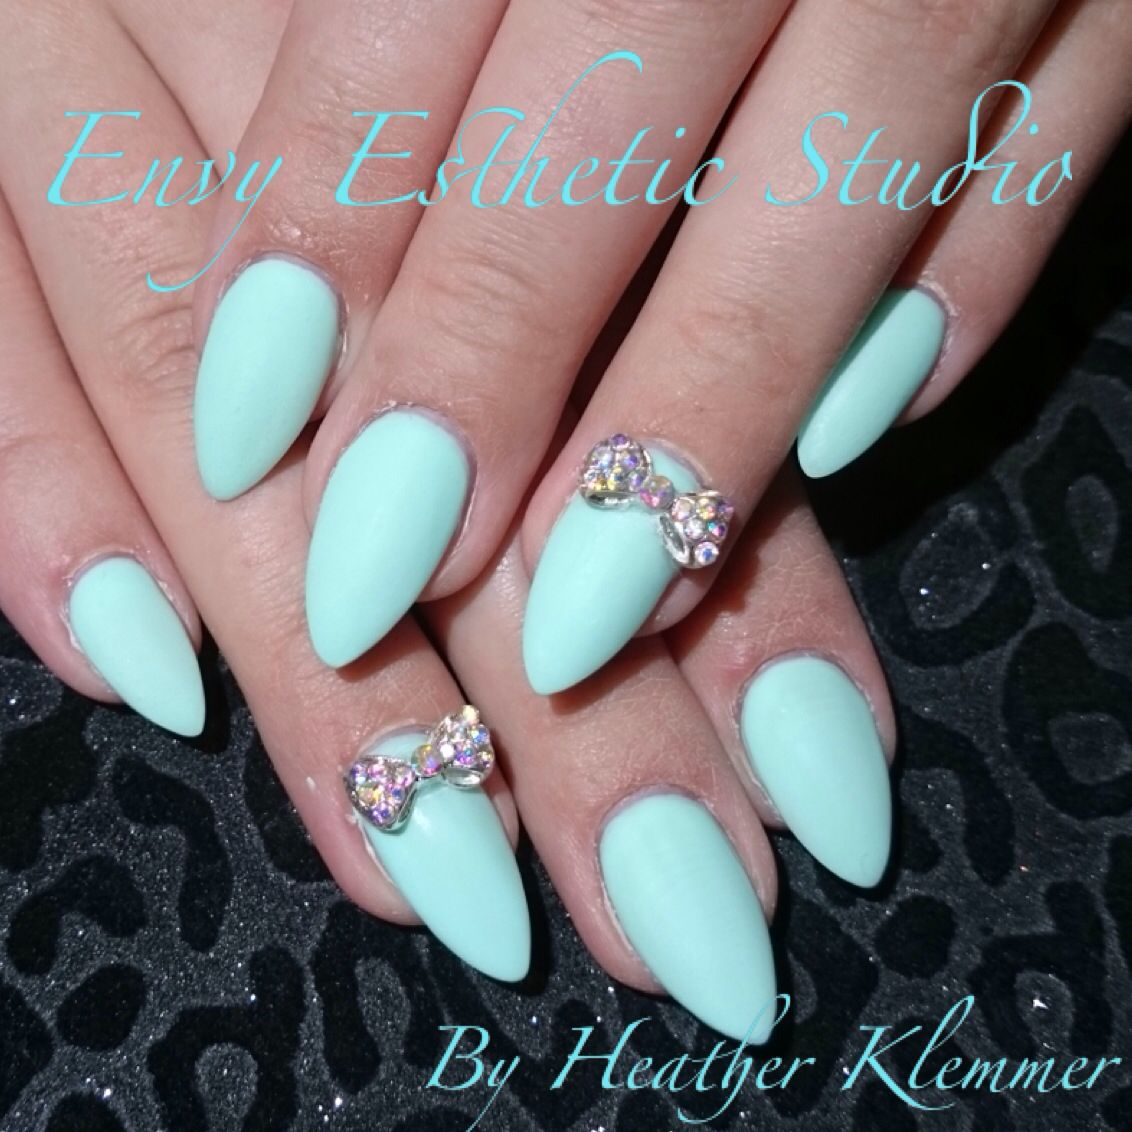 Mint green gelnails nails nailart grad nails promnails weddingnails ...